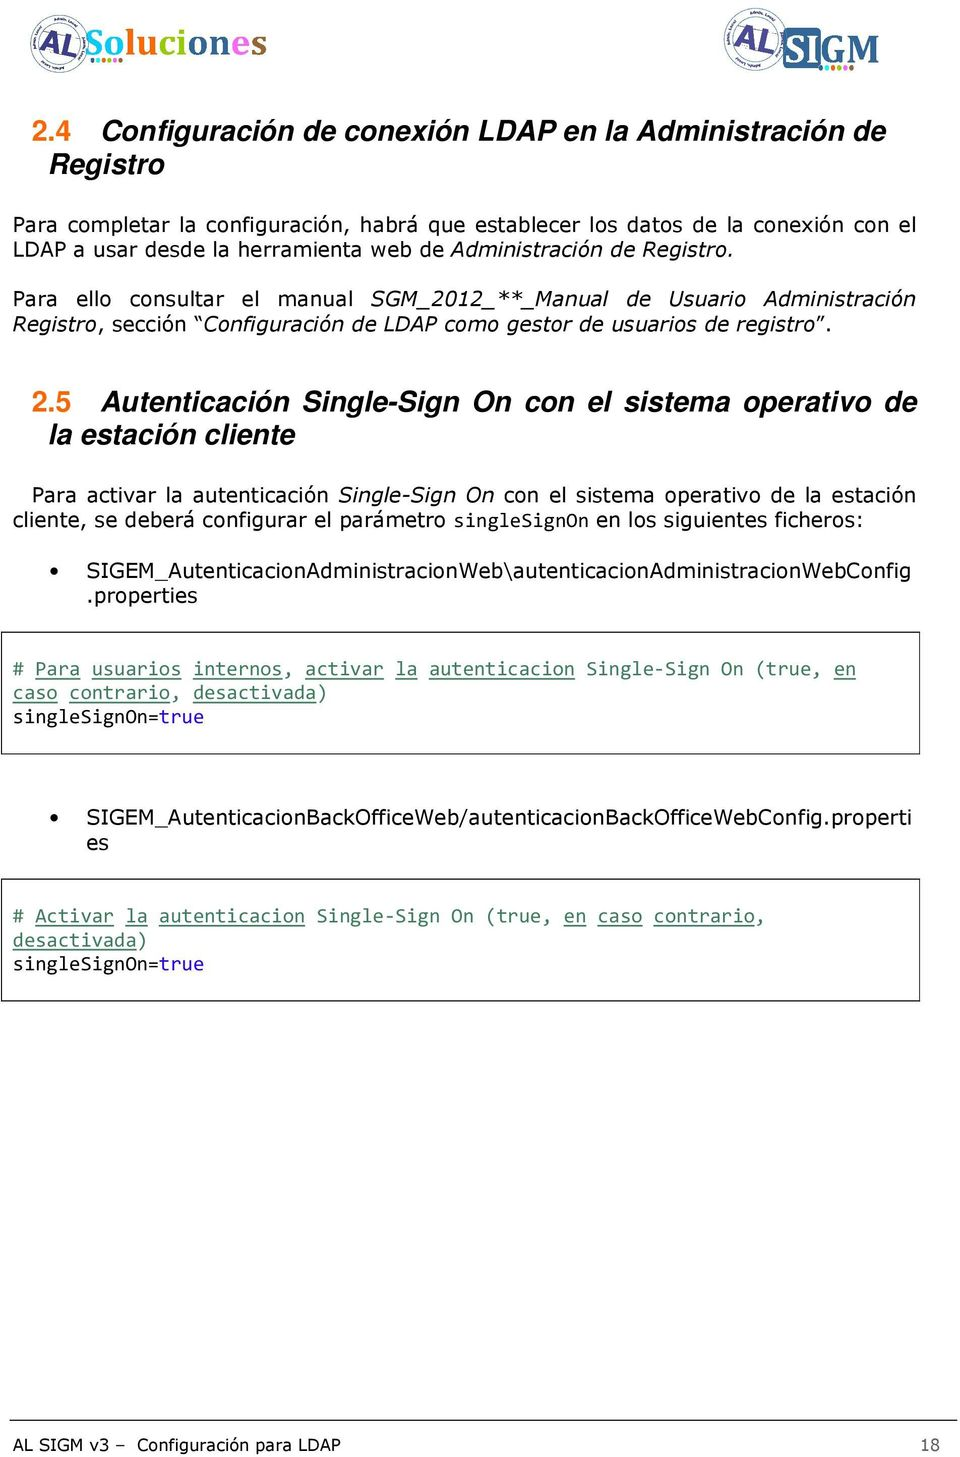 5 Autenticación Single-Sign On con el sistema operativo de la estación cliente Para activar la autenticación Single-Sign On con el sistema operativo de la estación cliente, se deberá configurar el